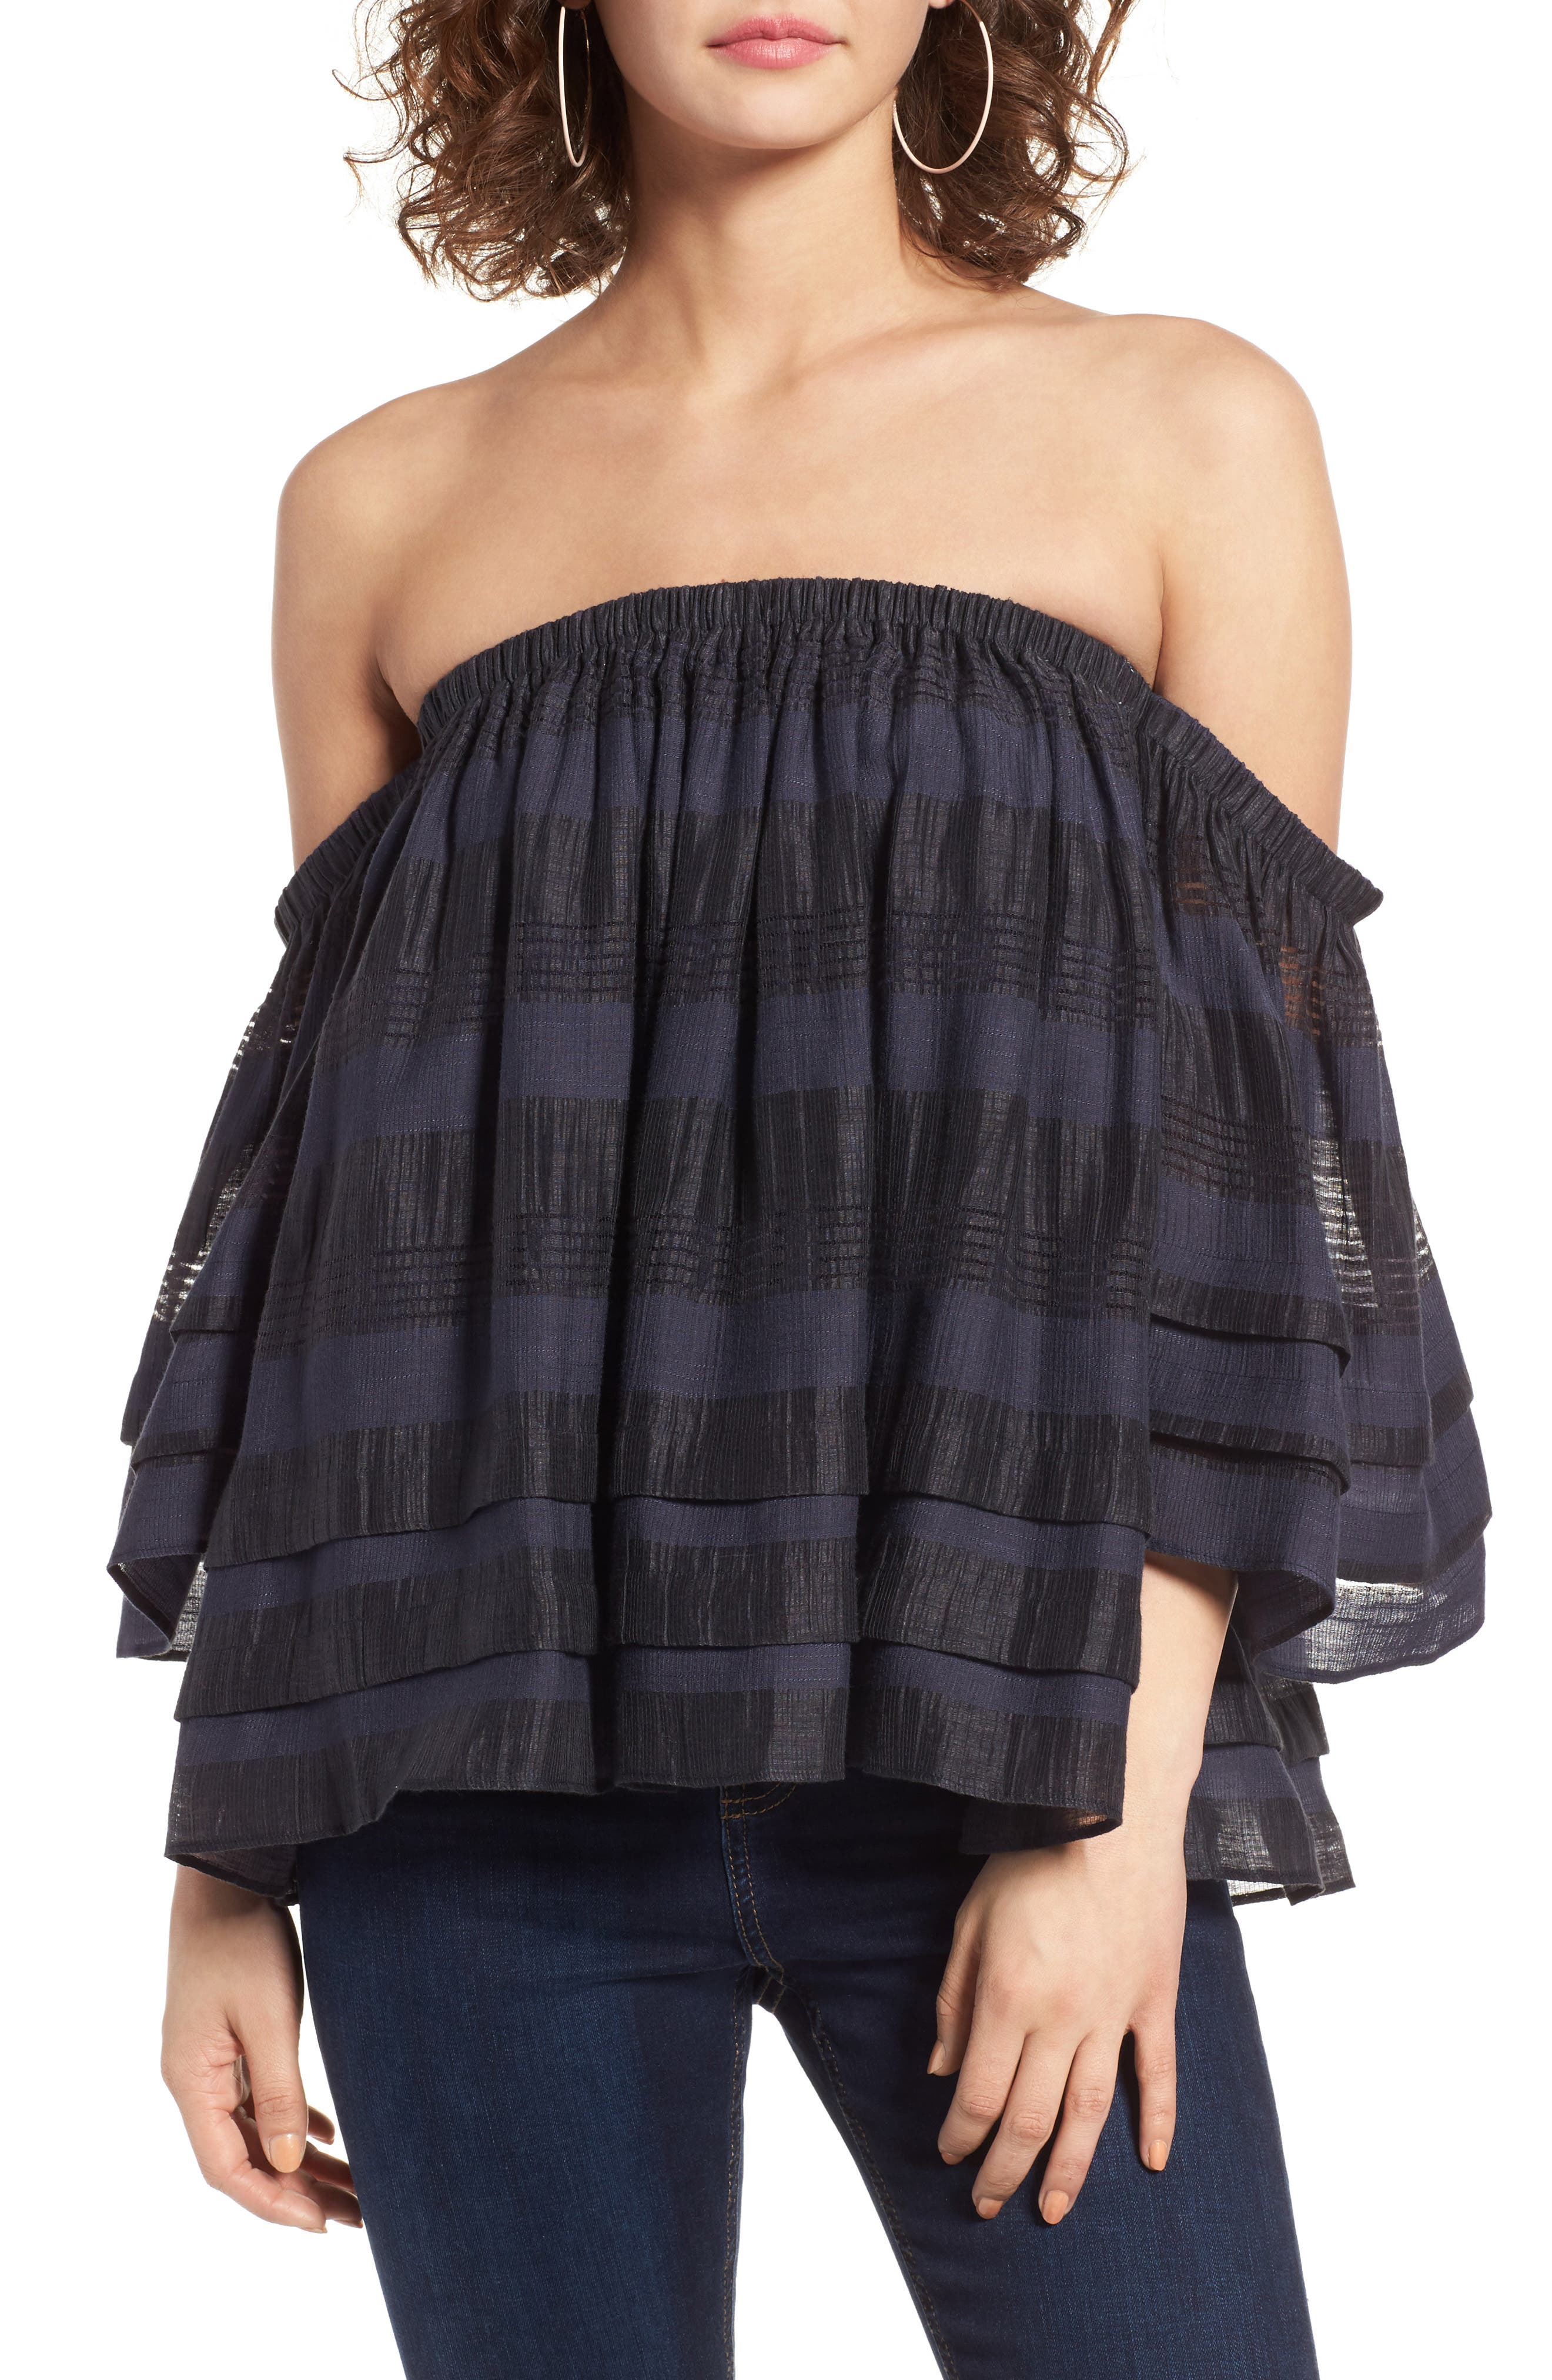 Alternate Image 1 Selected - J.O.A. Tiered Off the Shoulder Top